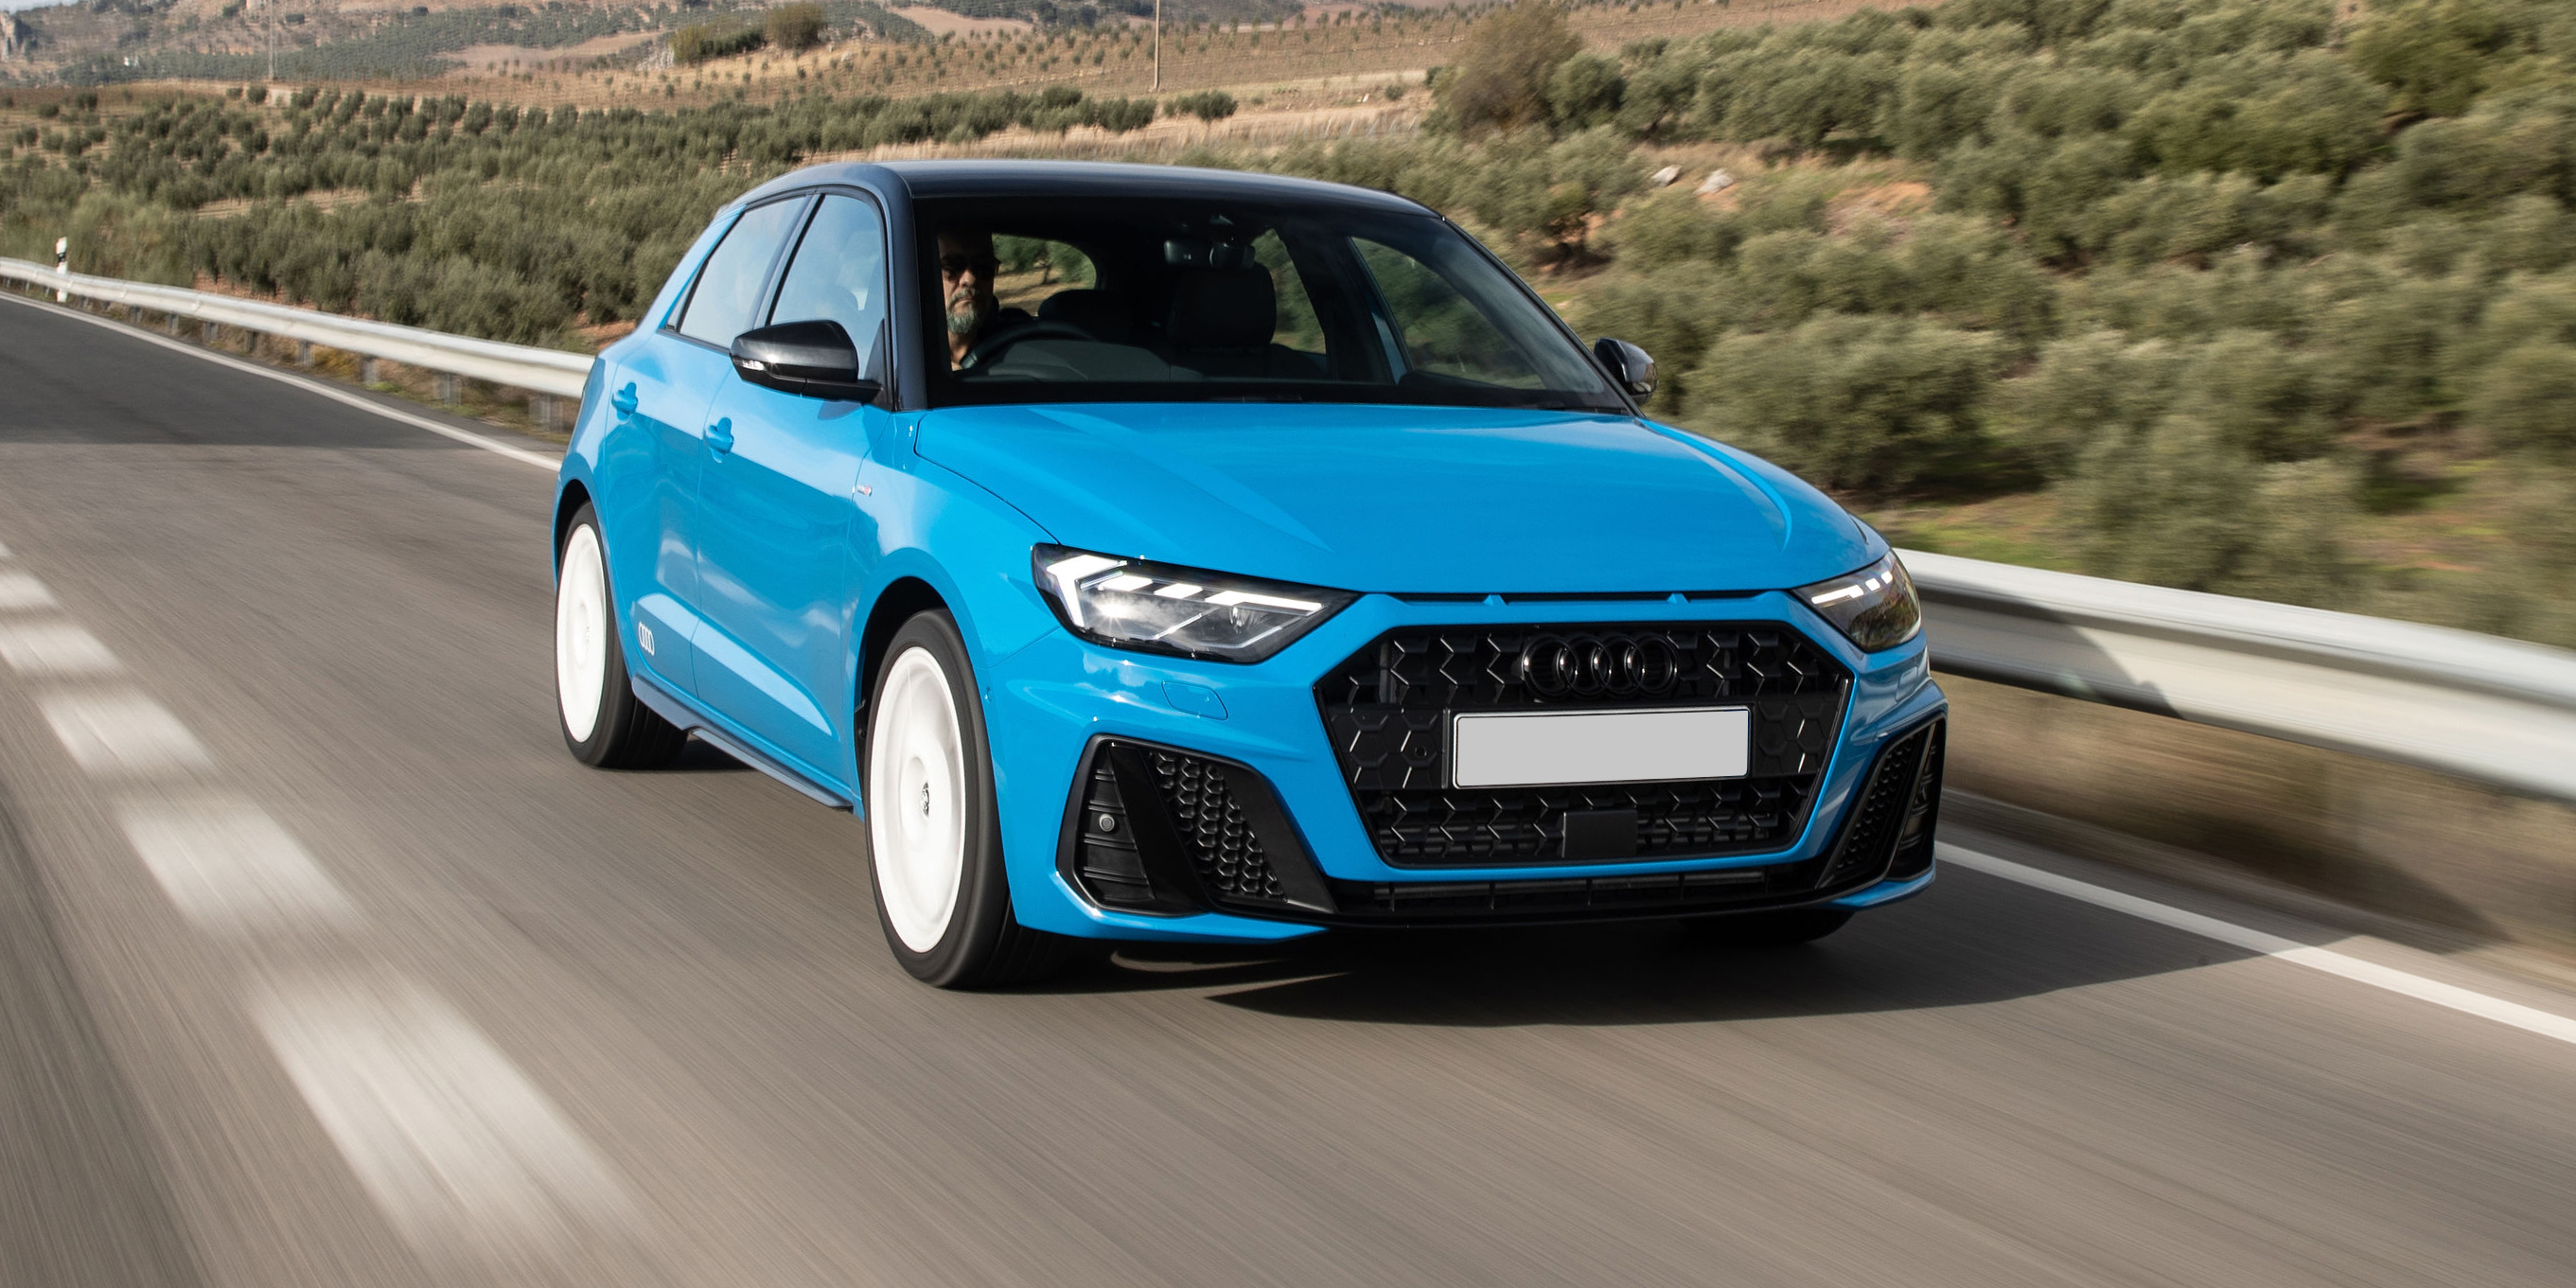 Audi A1 Sportback Specifications & Prices | carwow